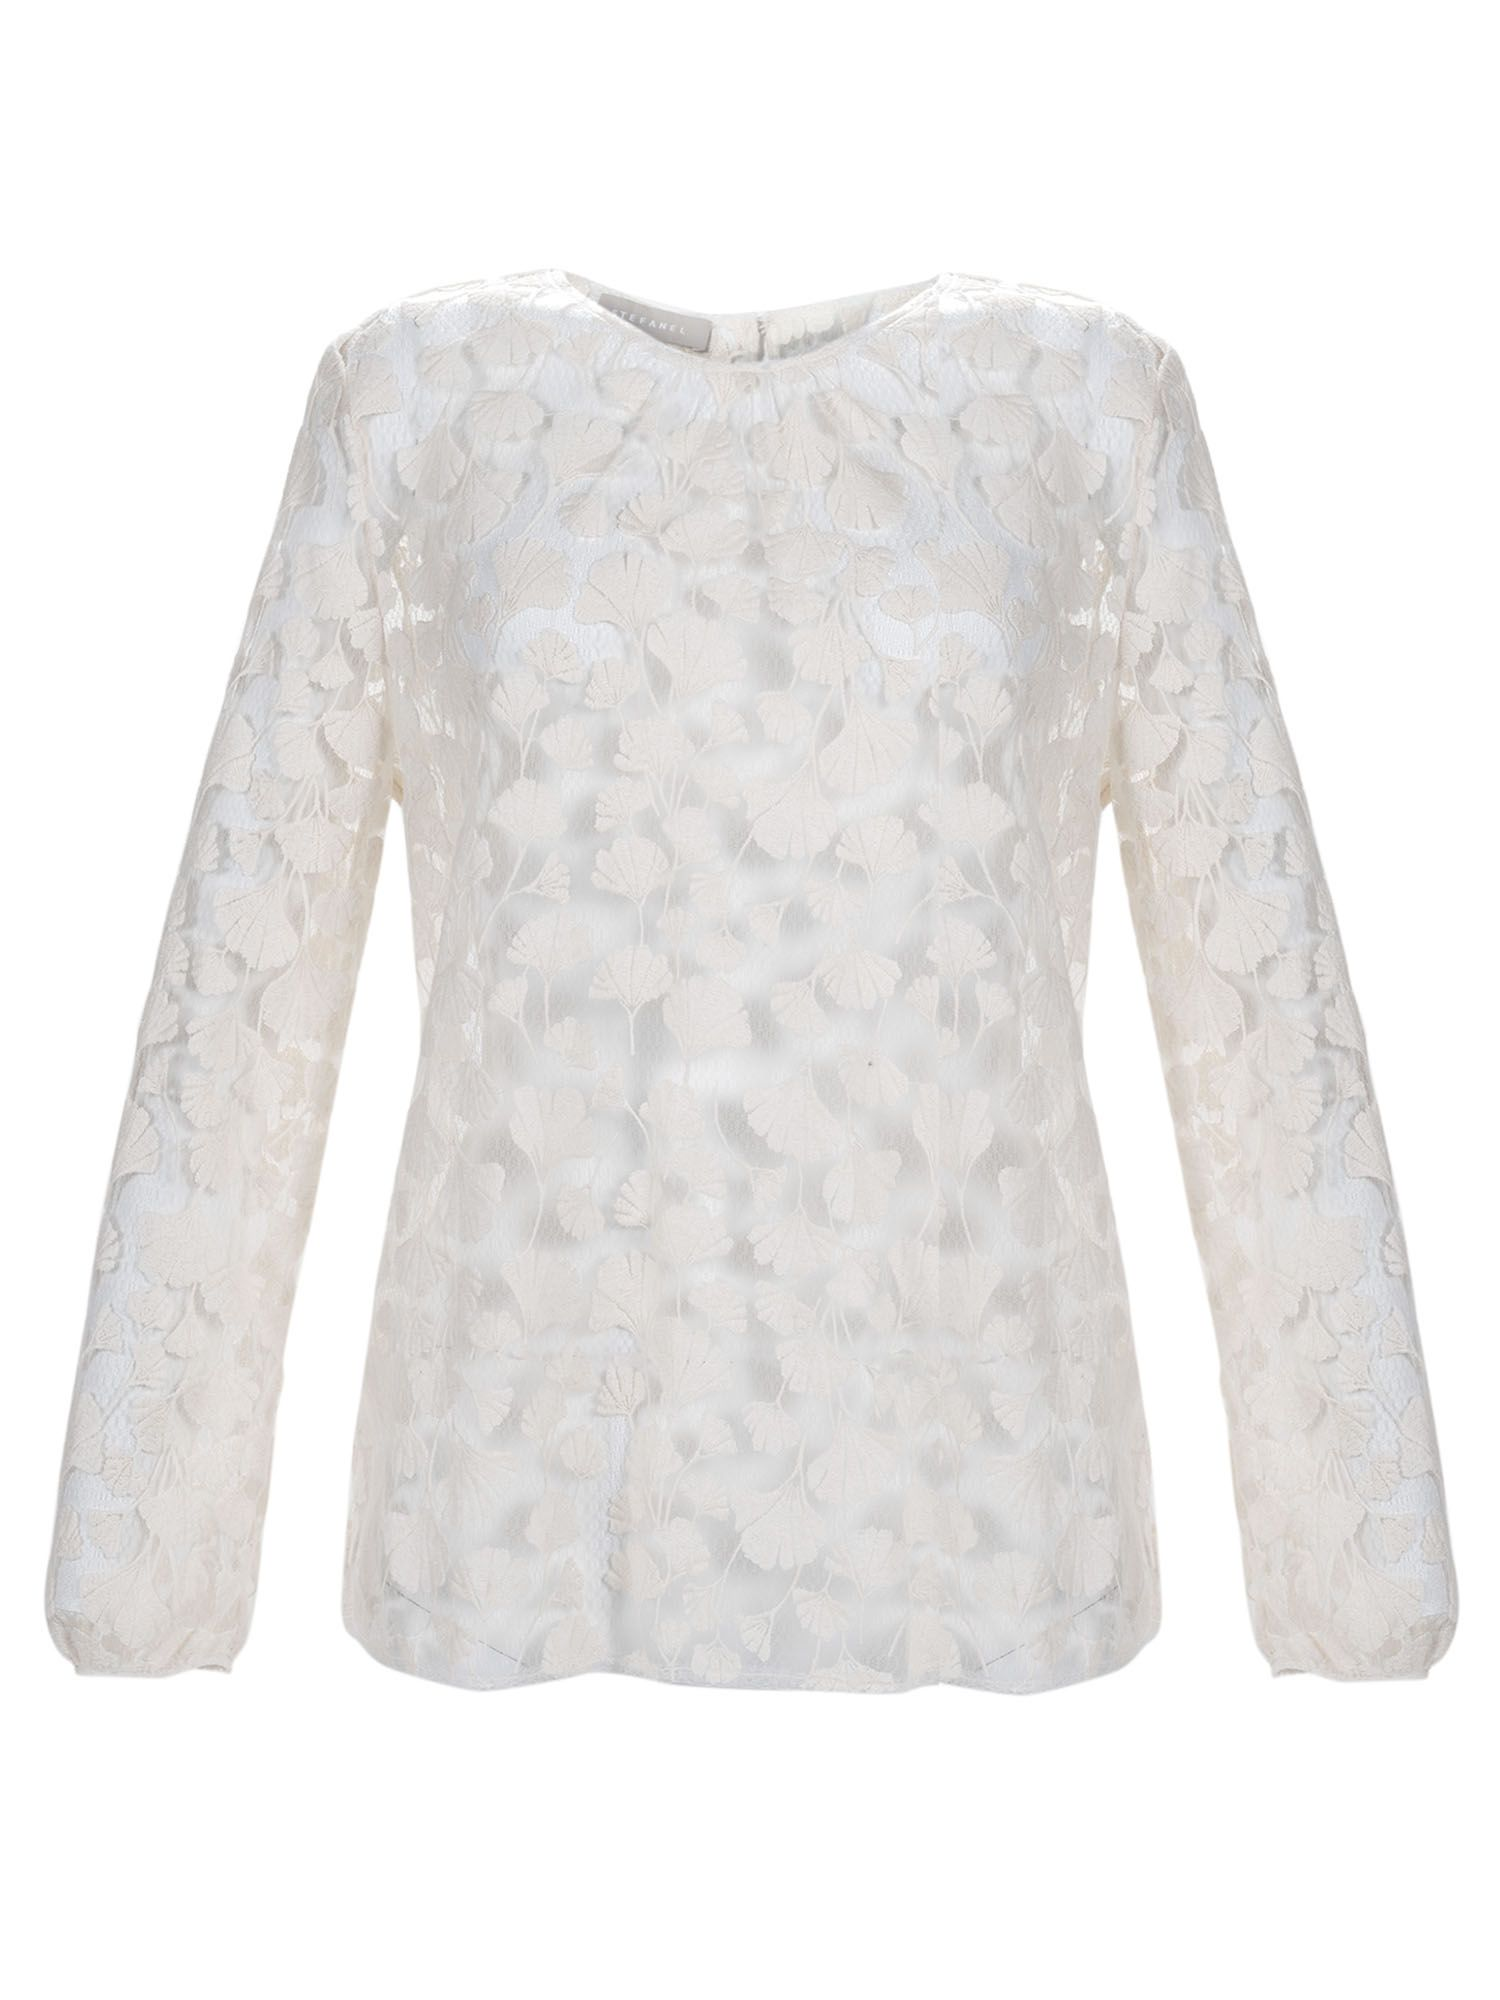 Stefanel Ginkgo Pattern Lace Blouse, Cream